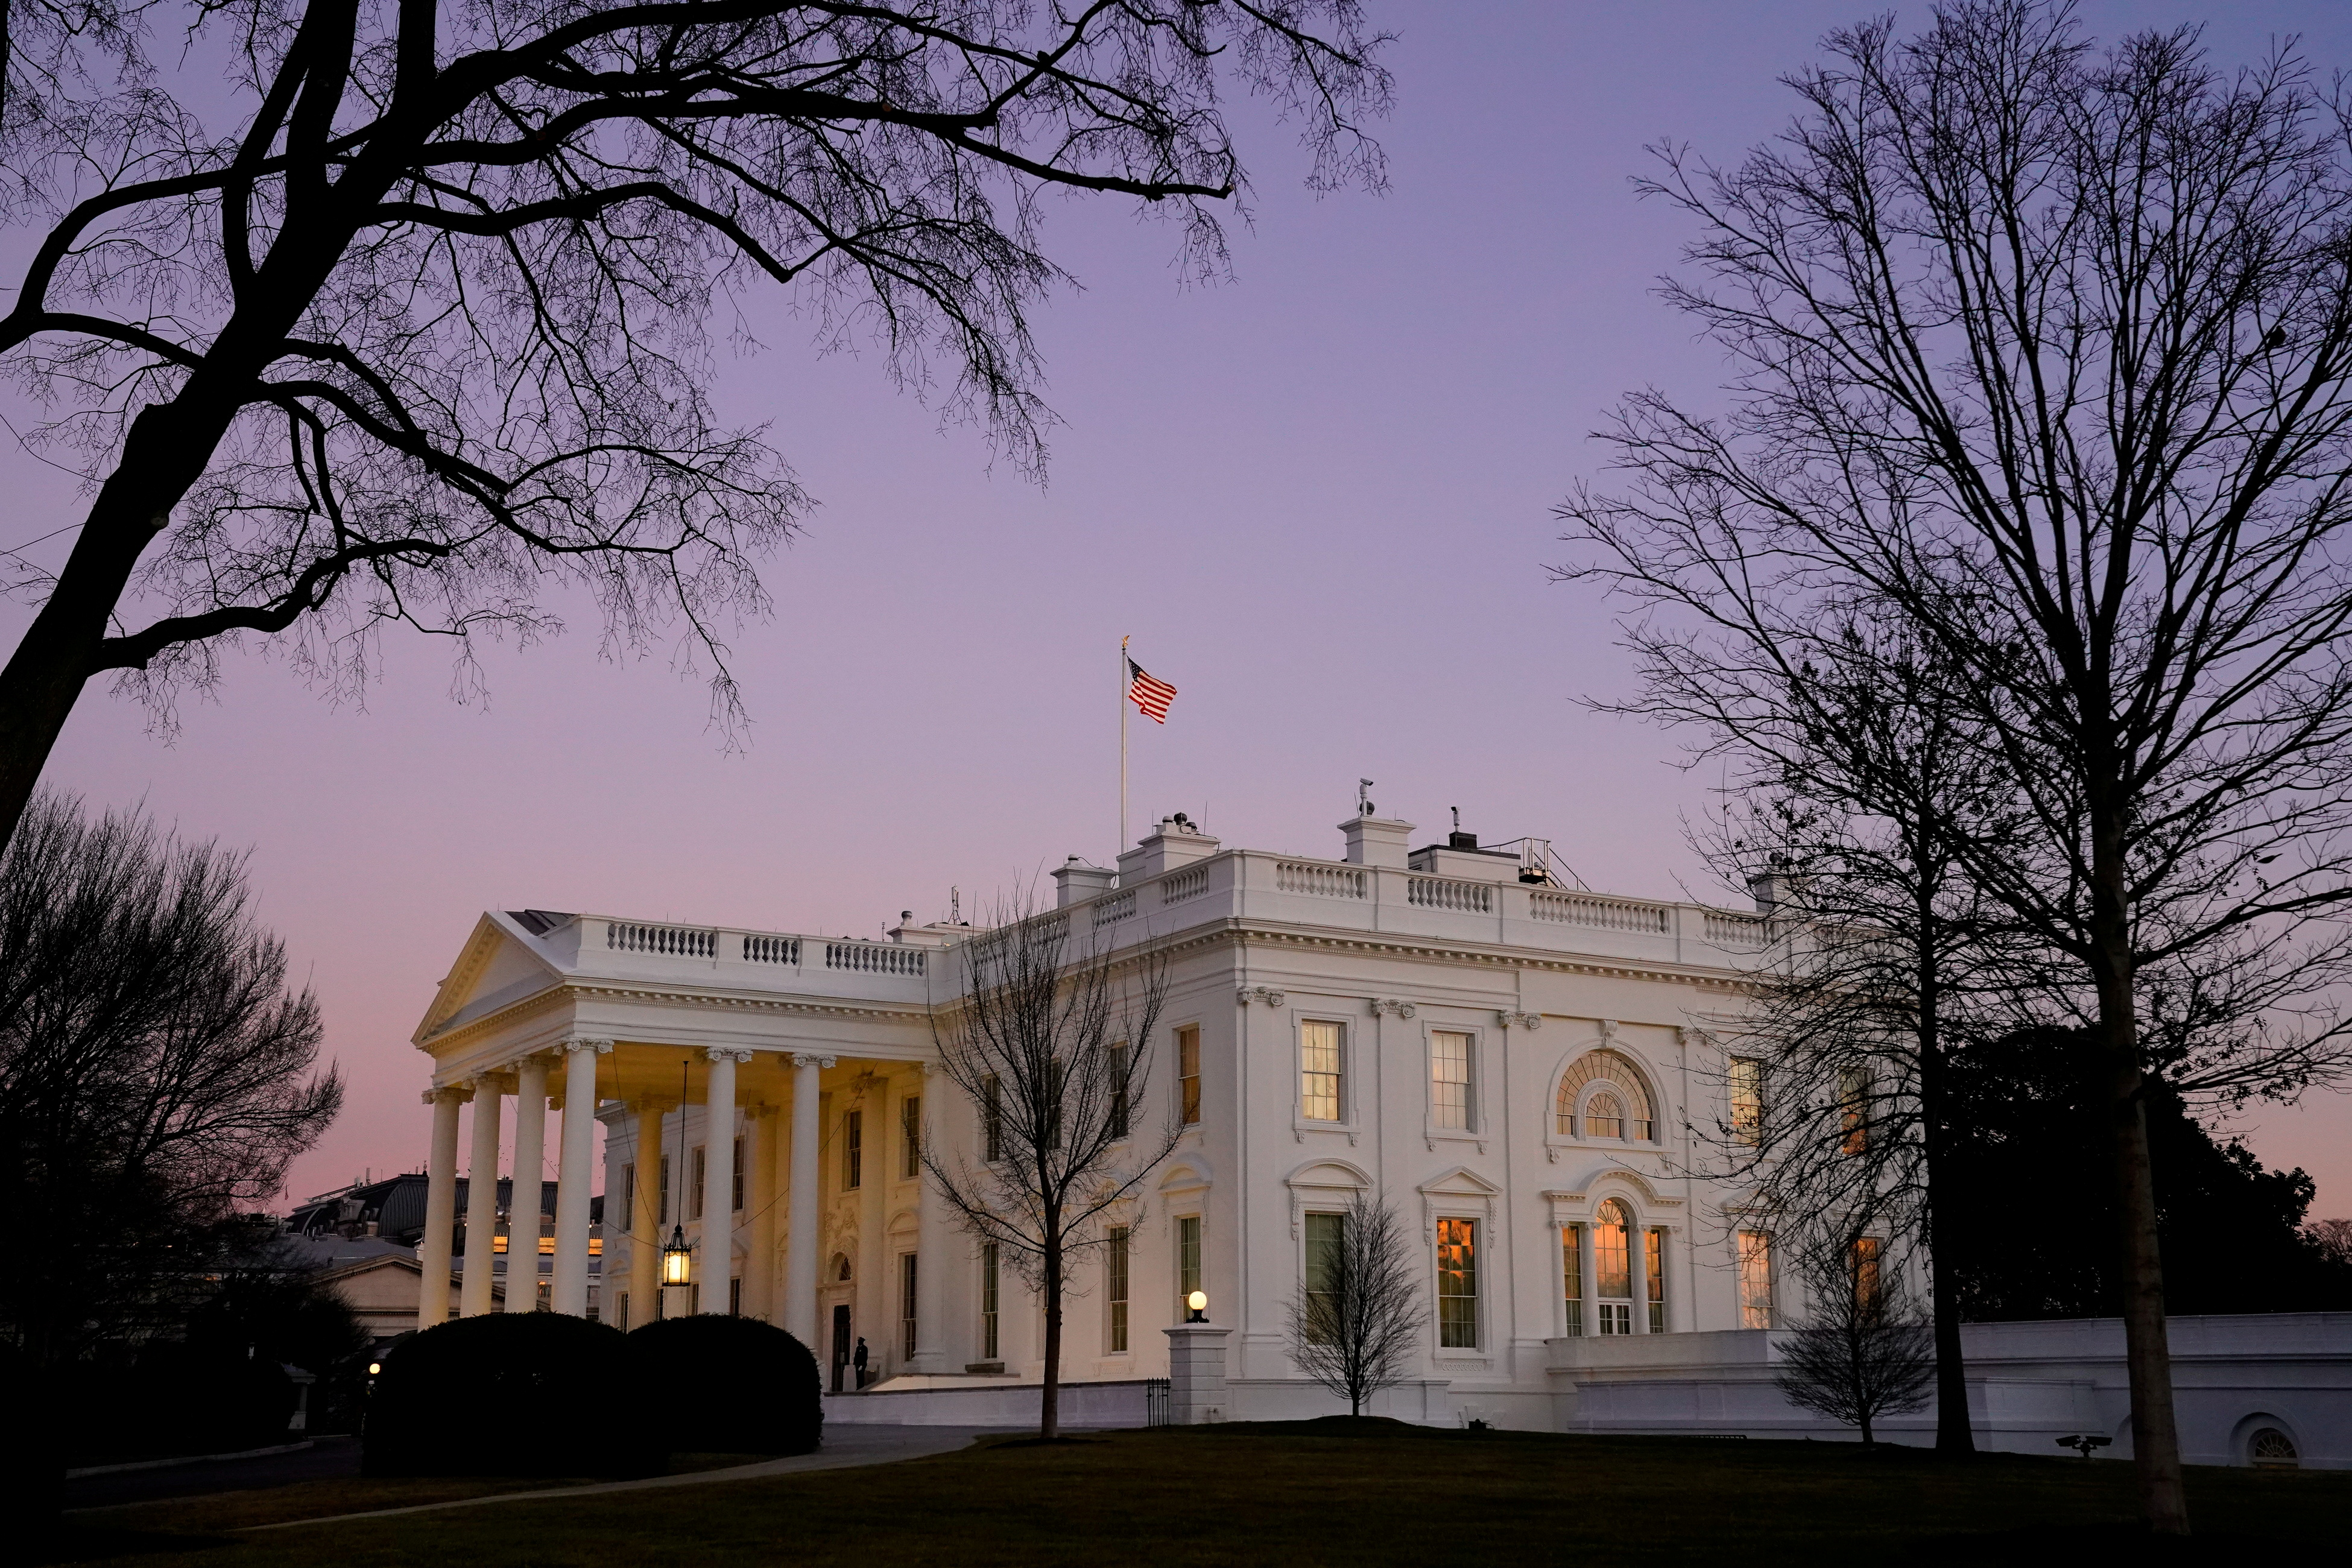 The White House is seen at sunset on U.S. President Joe Biden's first day in office in Washington, U.S., January 20, 2021. REUTERS/Erin Scott/File Photo